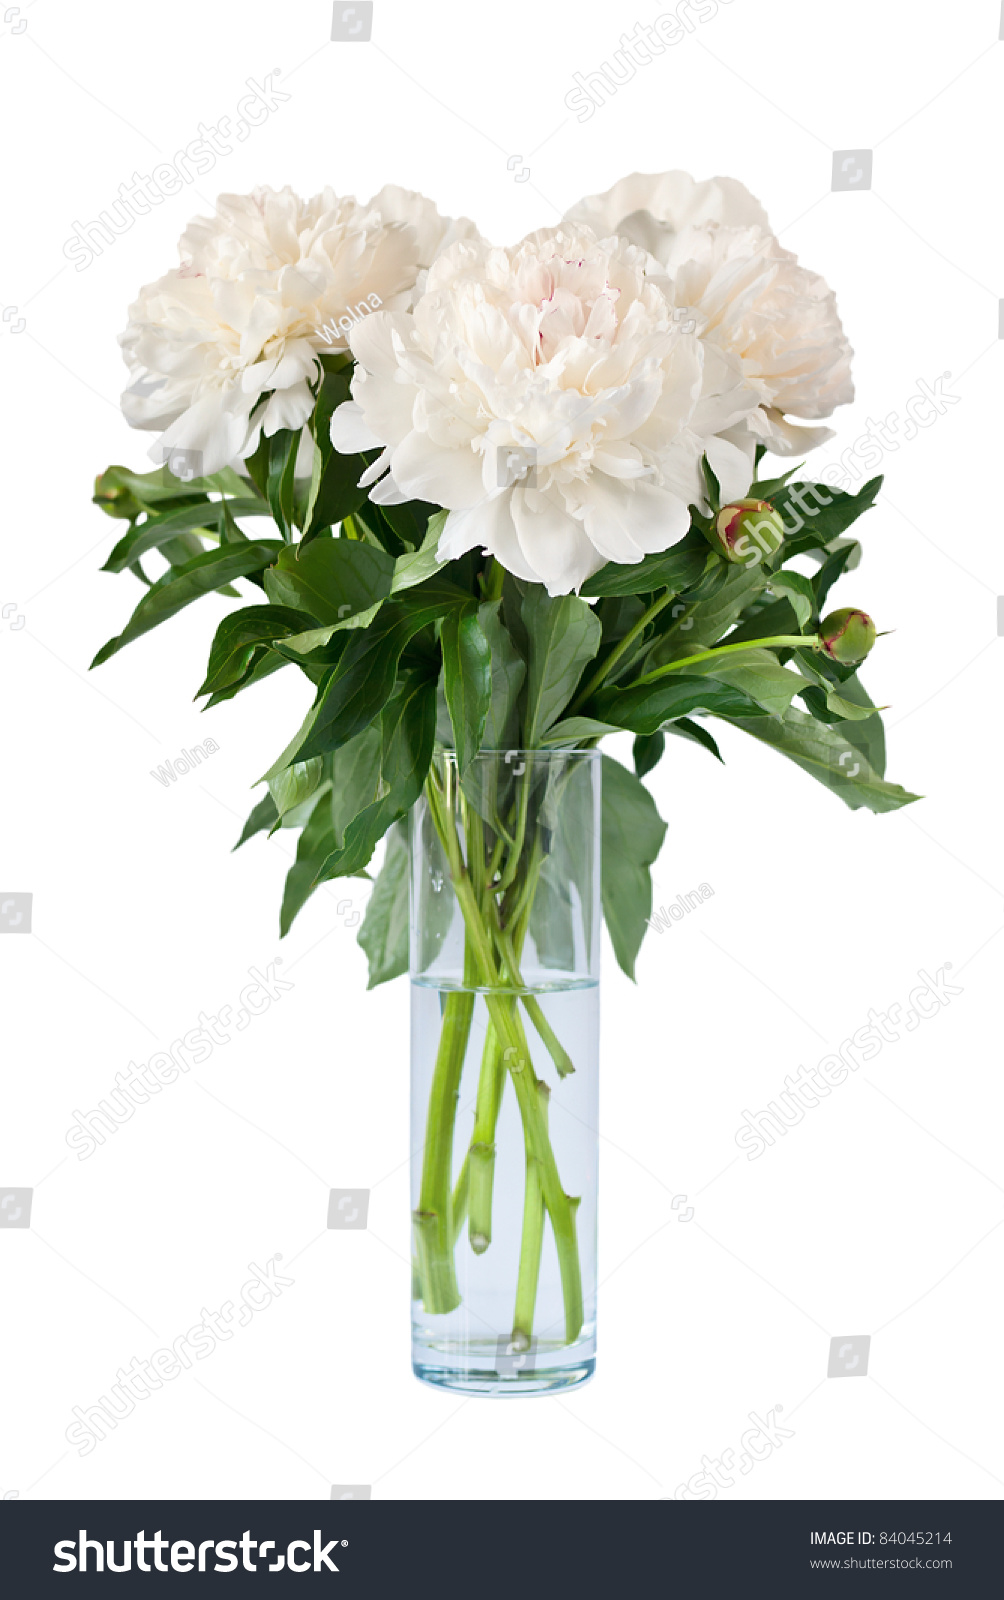 Beautiful White Flowers Peonies In A Vase Isolated On